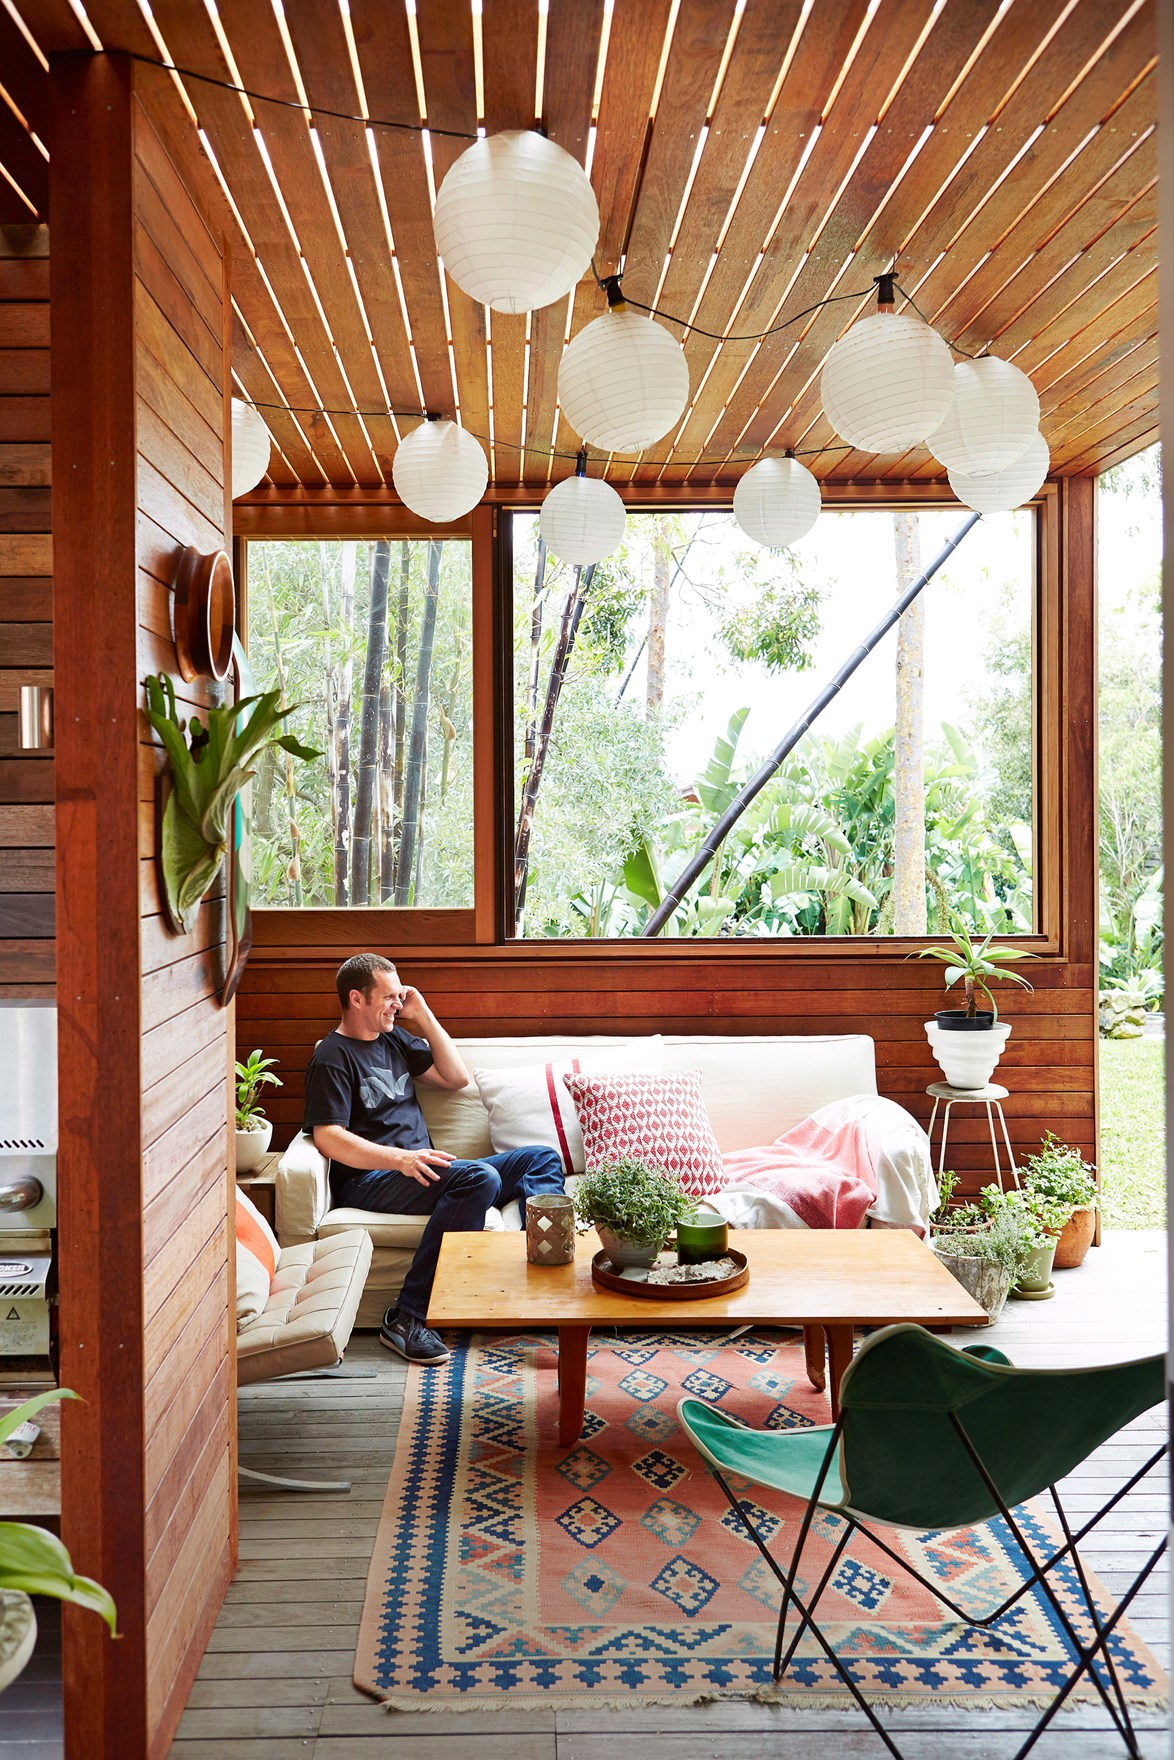 Clusters of plants, a patterned rug and comfy day bed make this the ultimate outdoor area. Photo: John Paul Urizar / *bauersyndication.com.au*